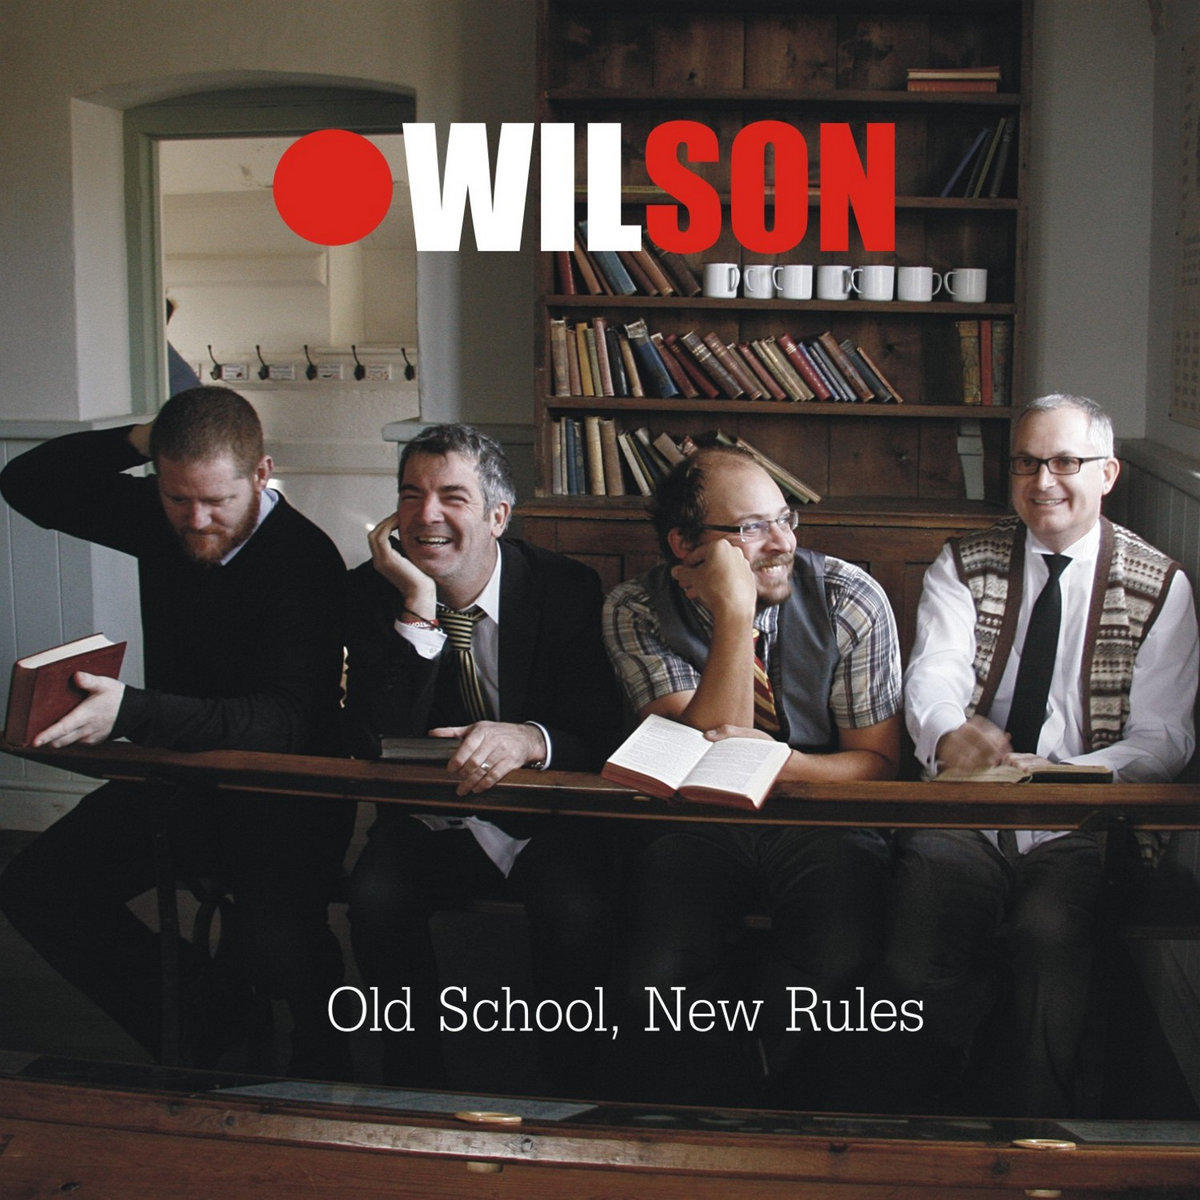 WILSON Old School, New Rules